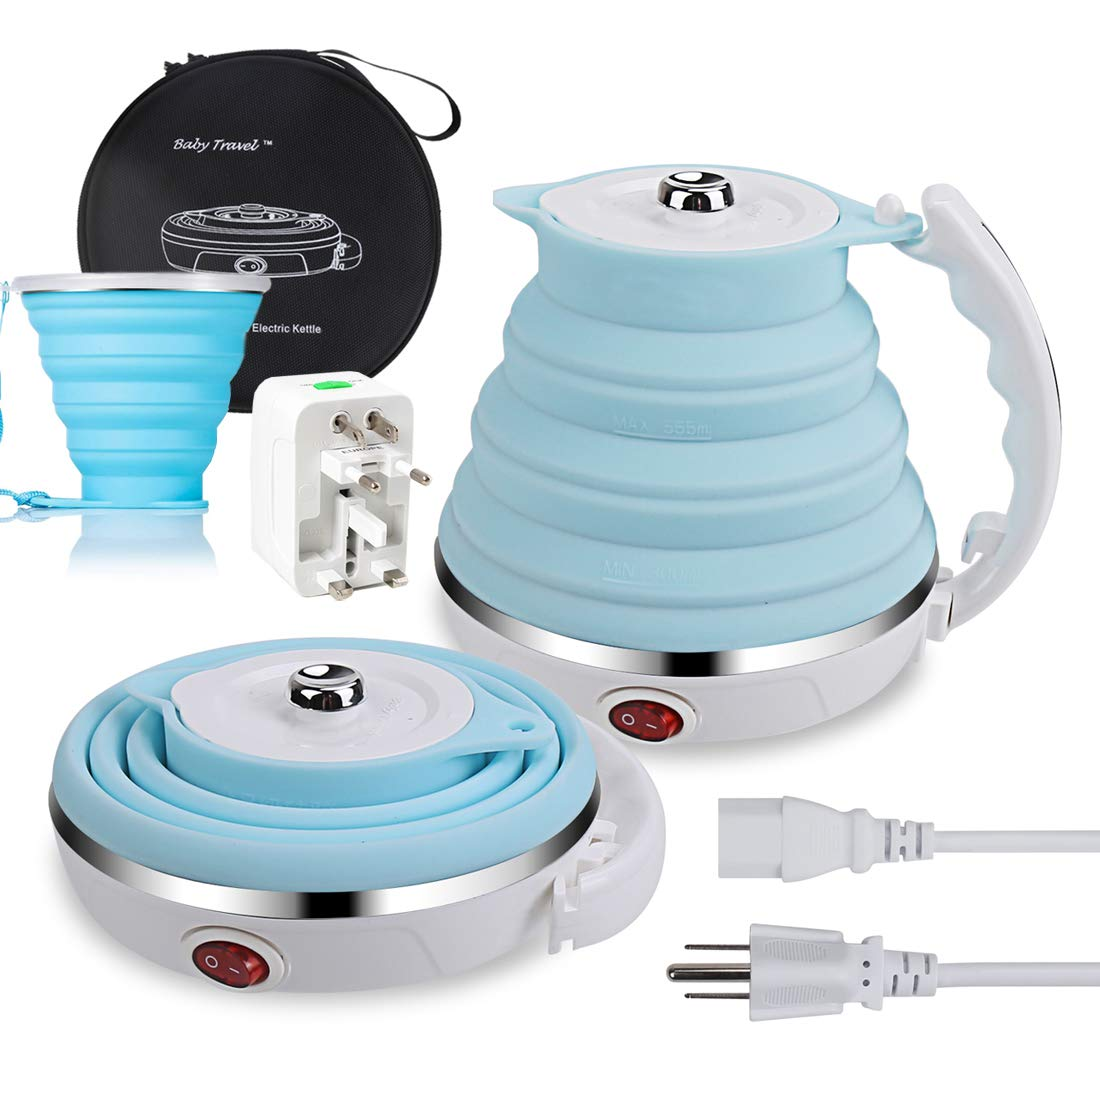 Travel Electric Kettle, Bluelark Food Grade Silicone Foldable Portable Kettle with Collapsible Cup, Dual Voltage 110-220V and Detachable Power Cord, 555ML Blue